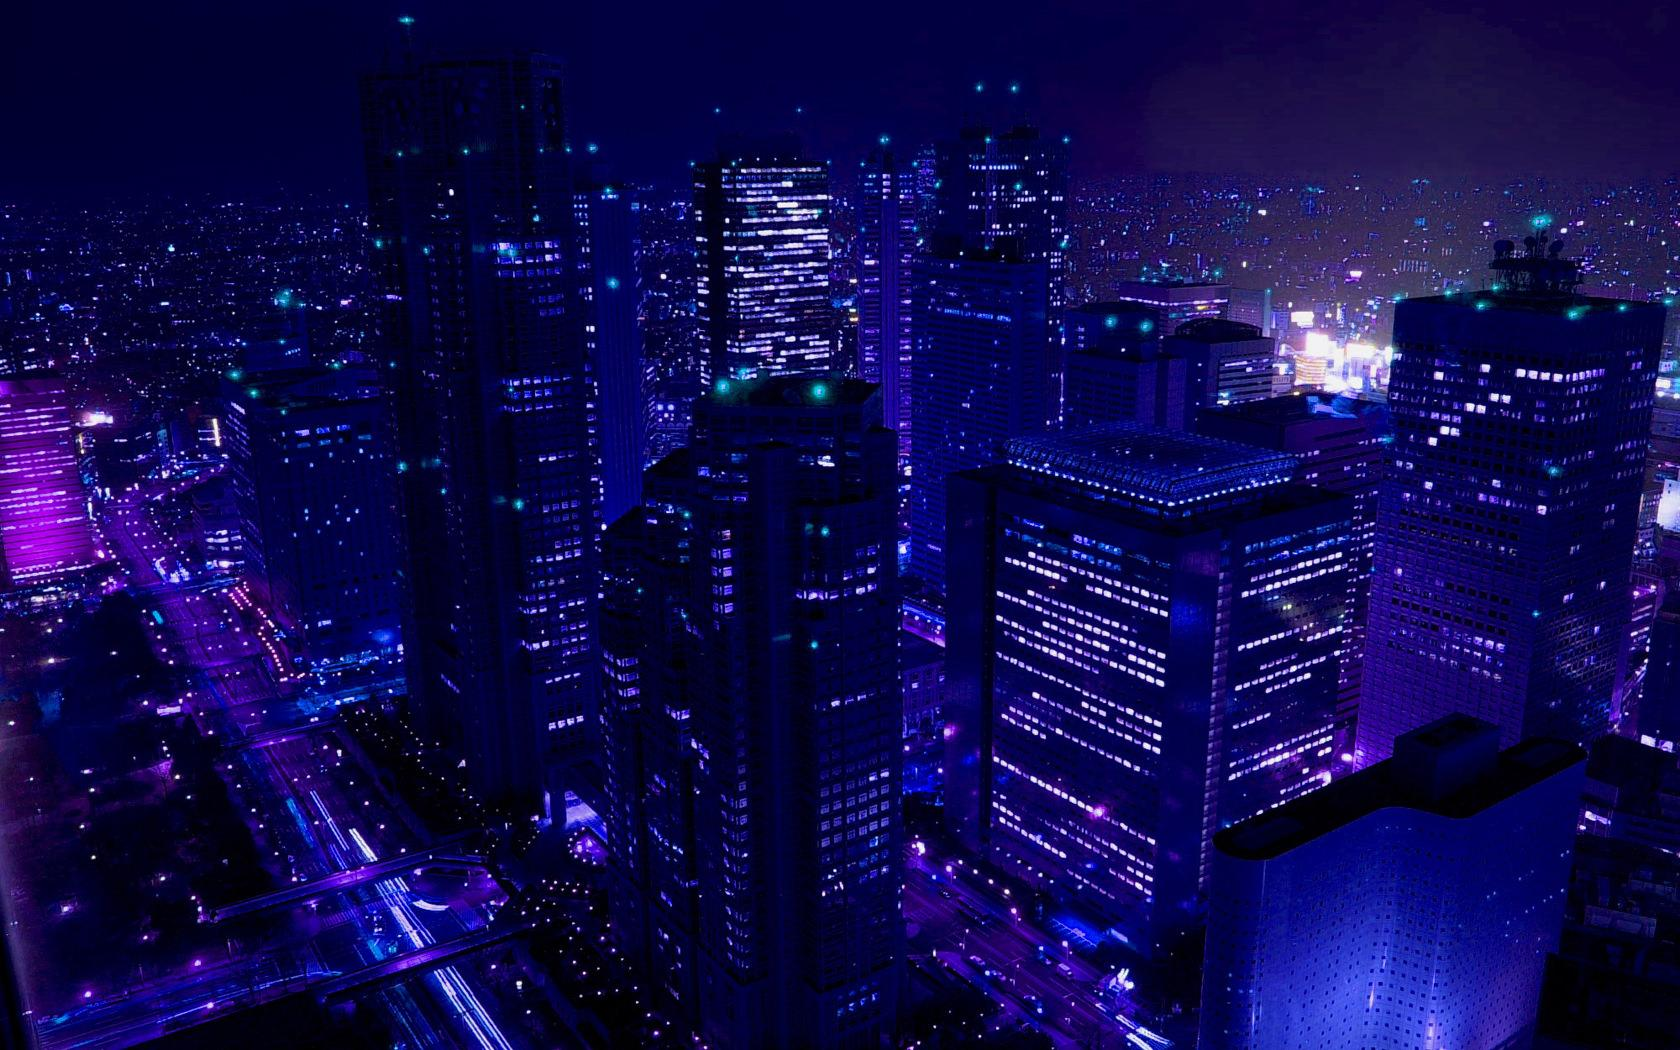 Aesthetic City Night Wallpapers - Wallpaper Cave